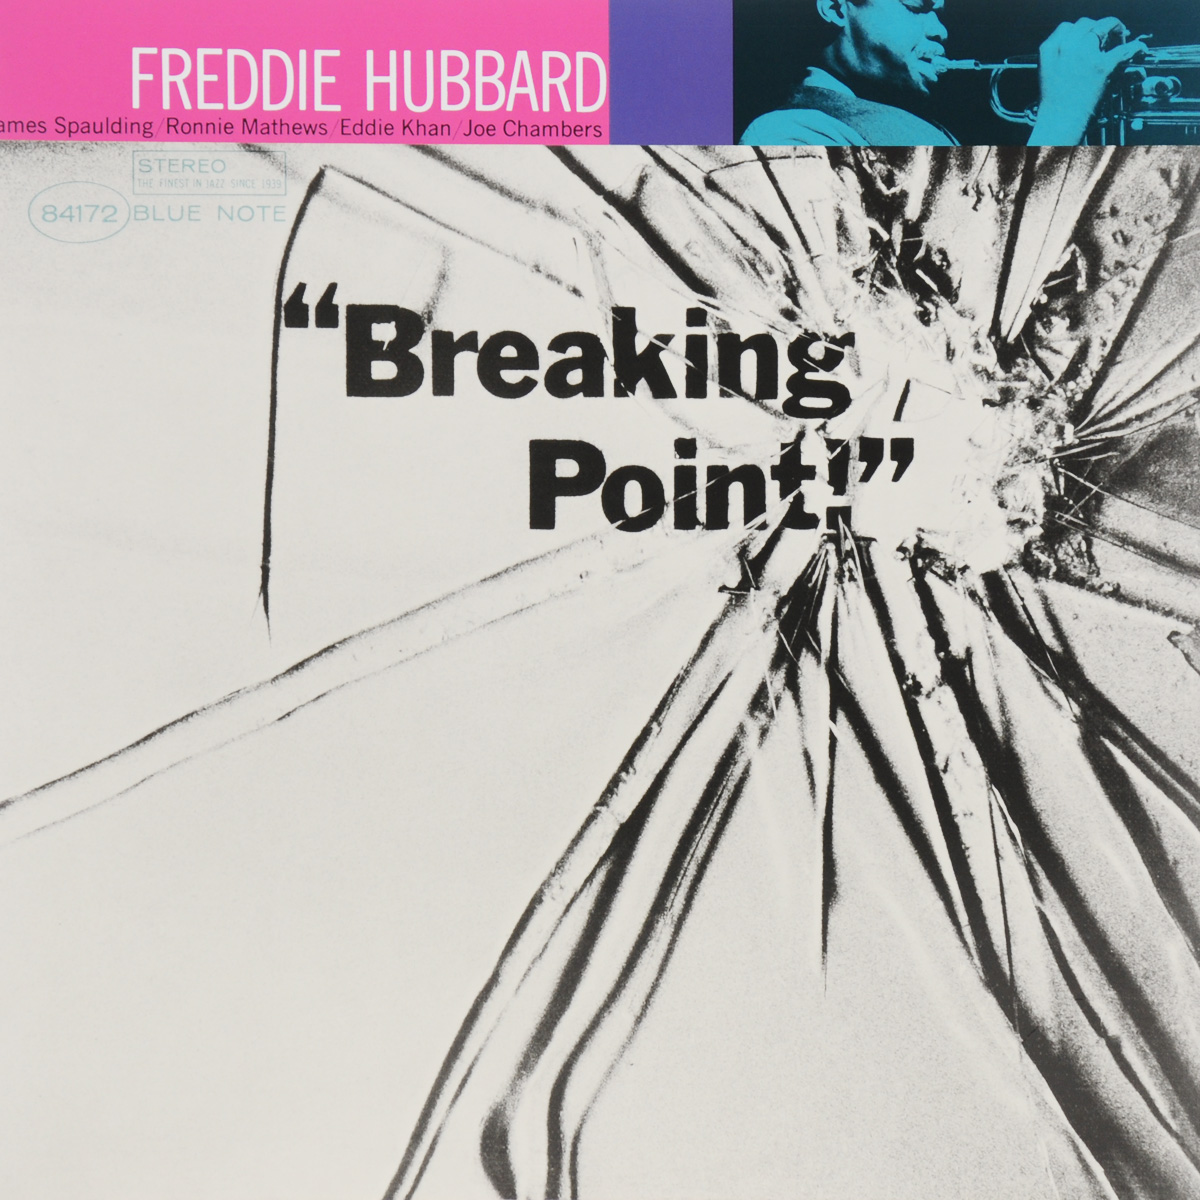 Фредди Хаббард Freddie Hubbard. Breaking Point (LP) куба виктория километры веры random side point